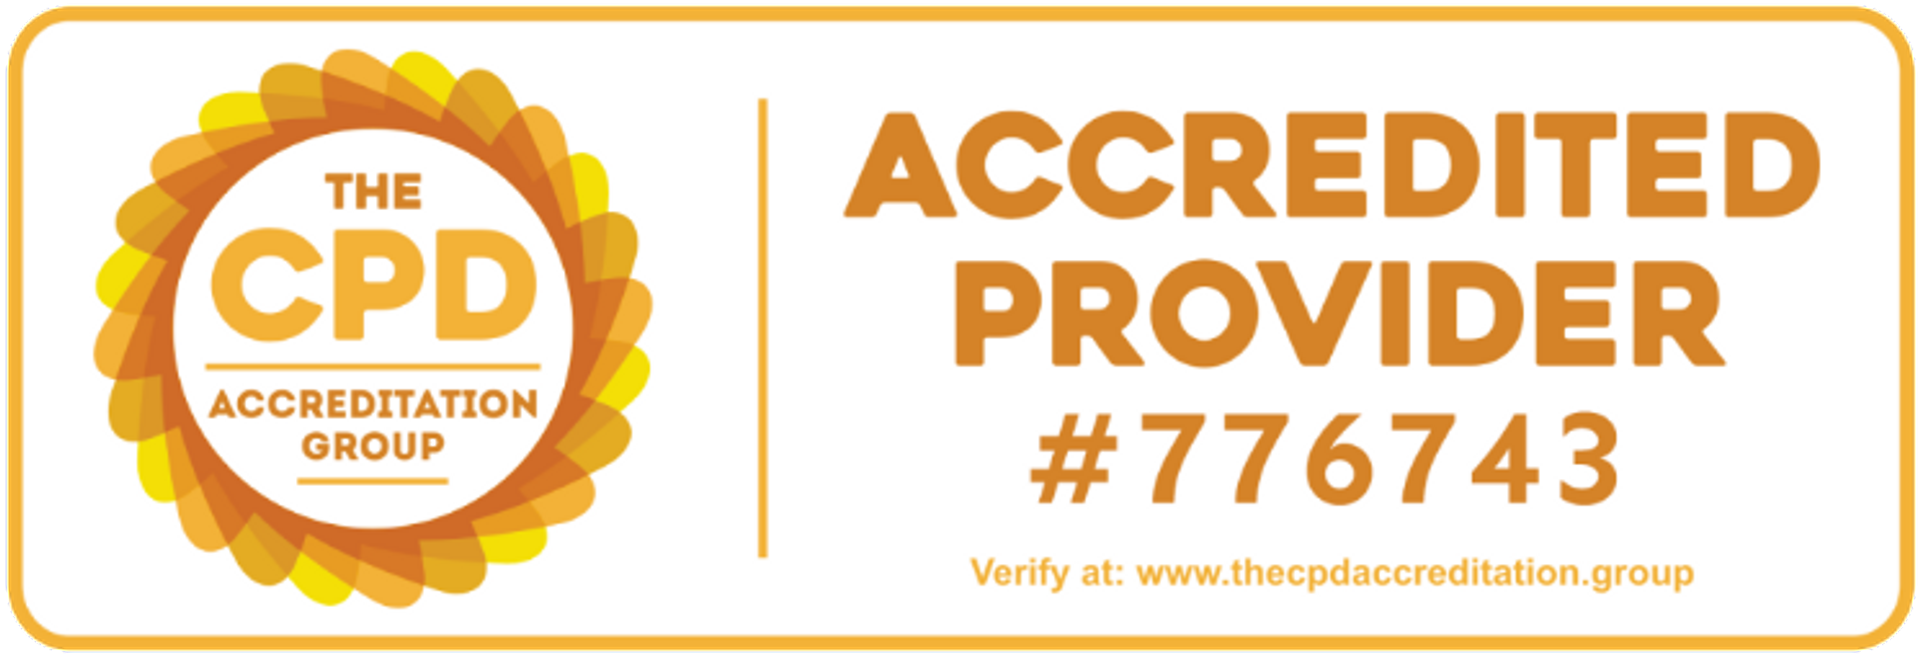 CPD Accredited Provider